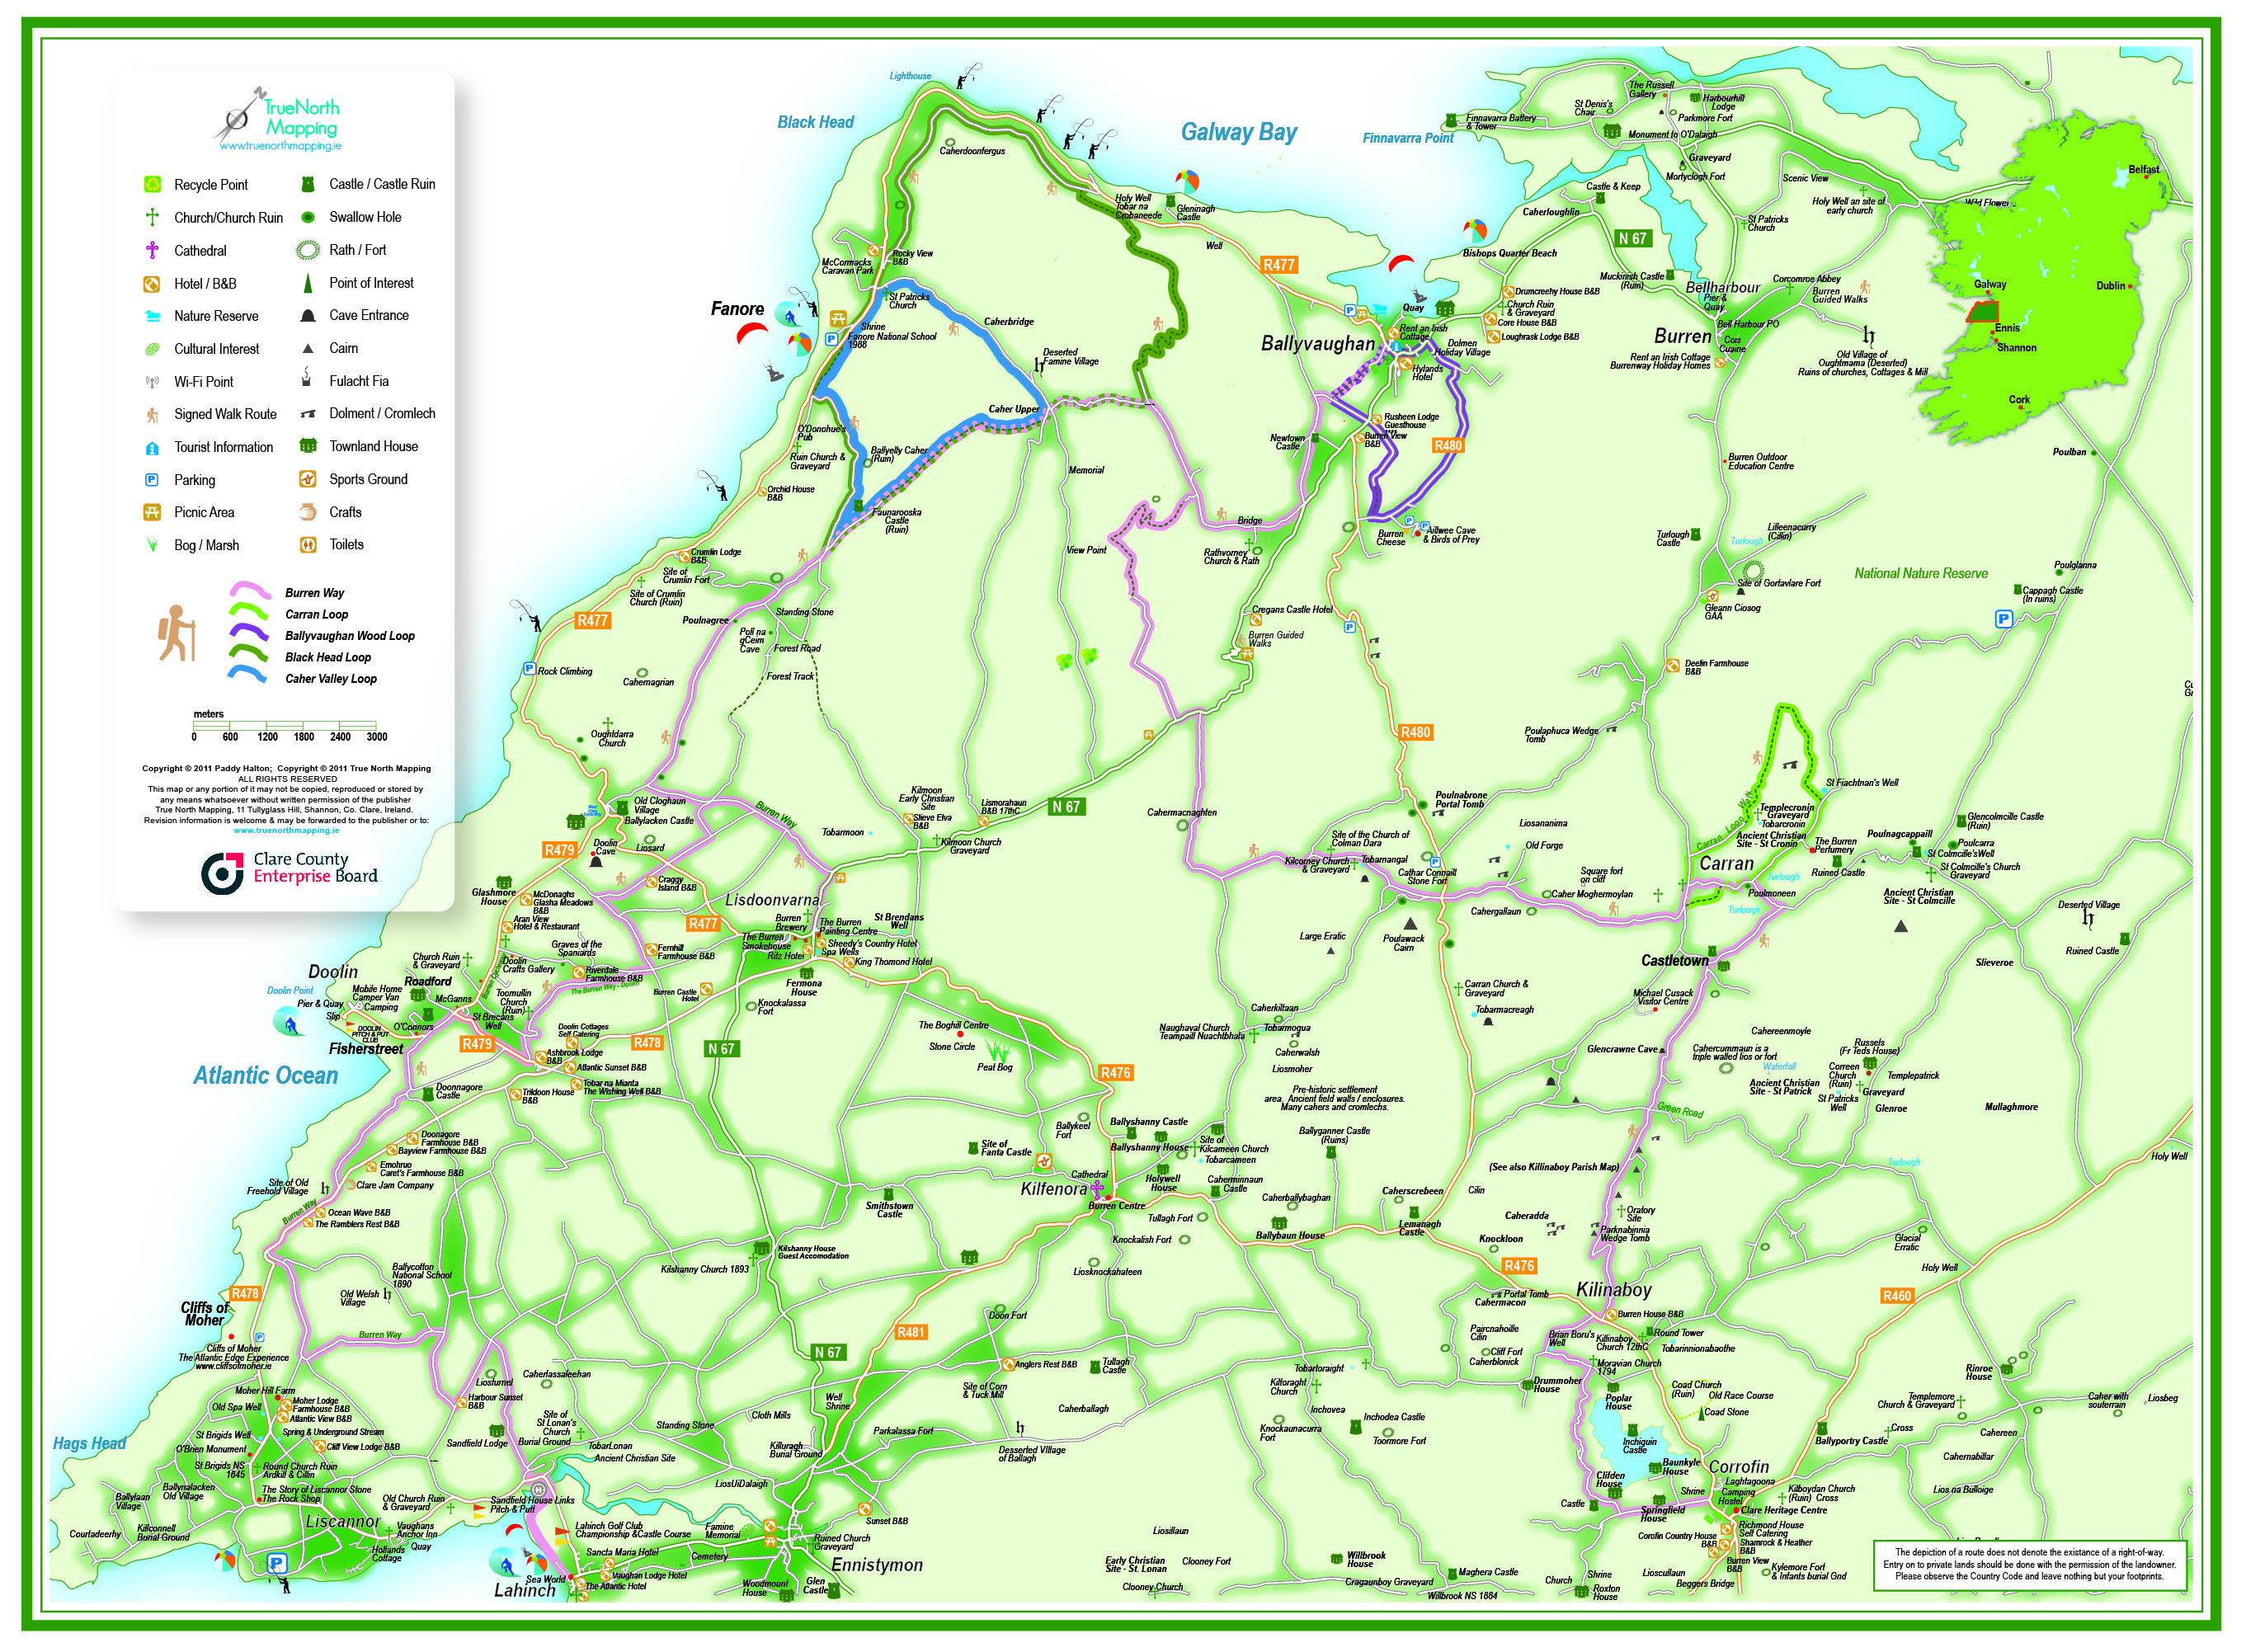 County Clare Map Of Ireland In And Around Doolin Cliffs